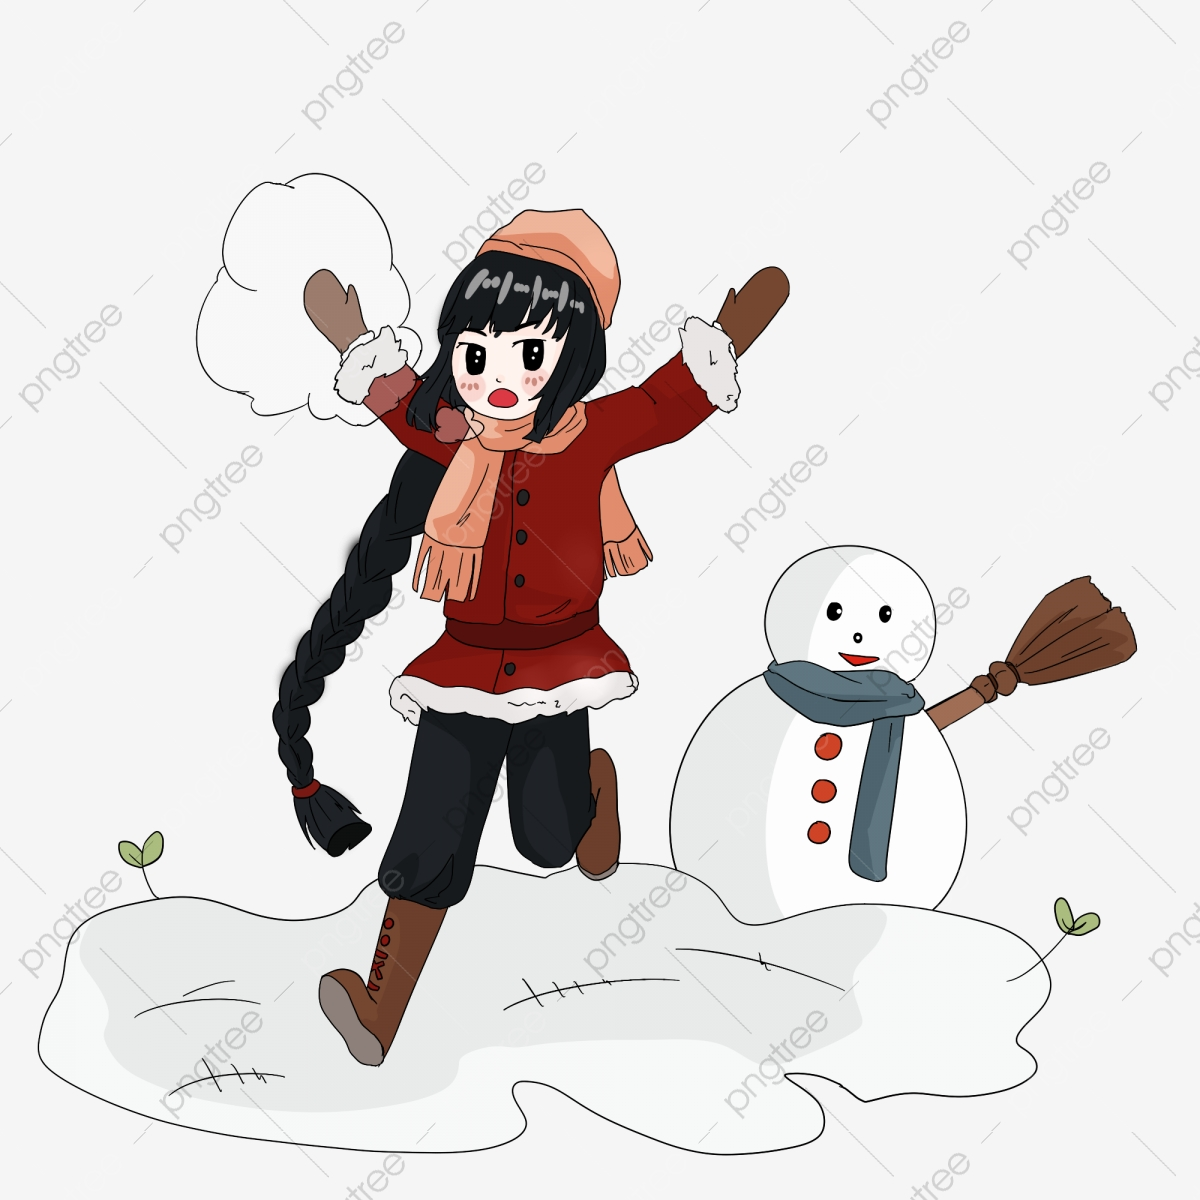 Make a snowman broom. Blizzard clipart snow sport